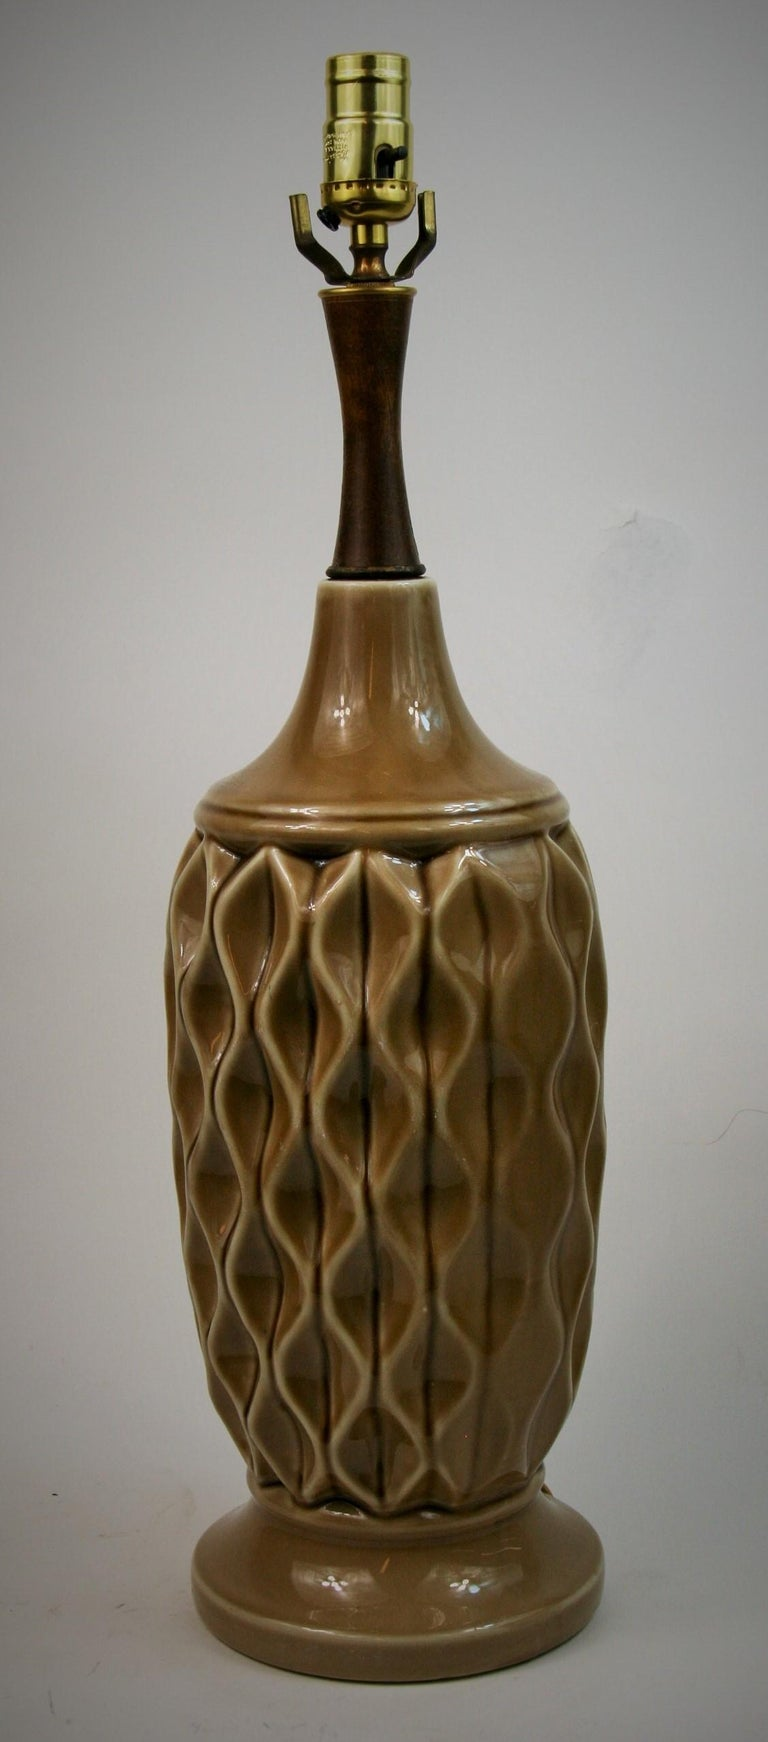 Late 20th Century Ceramic Table Lamp with Geometric Detailing, 1970s For Sale